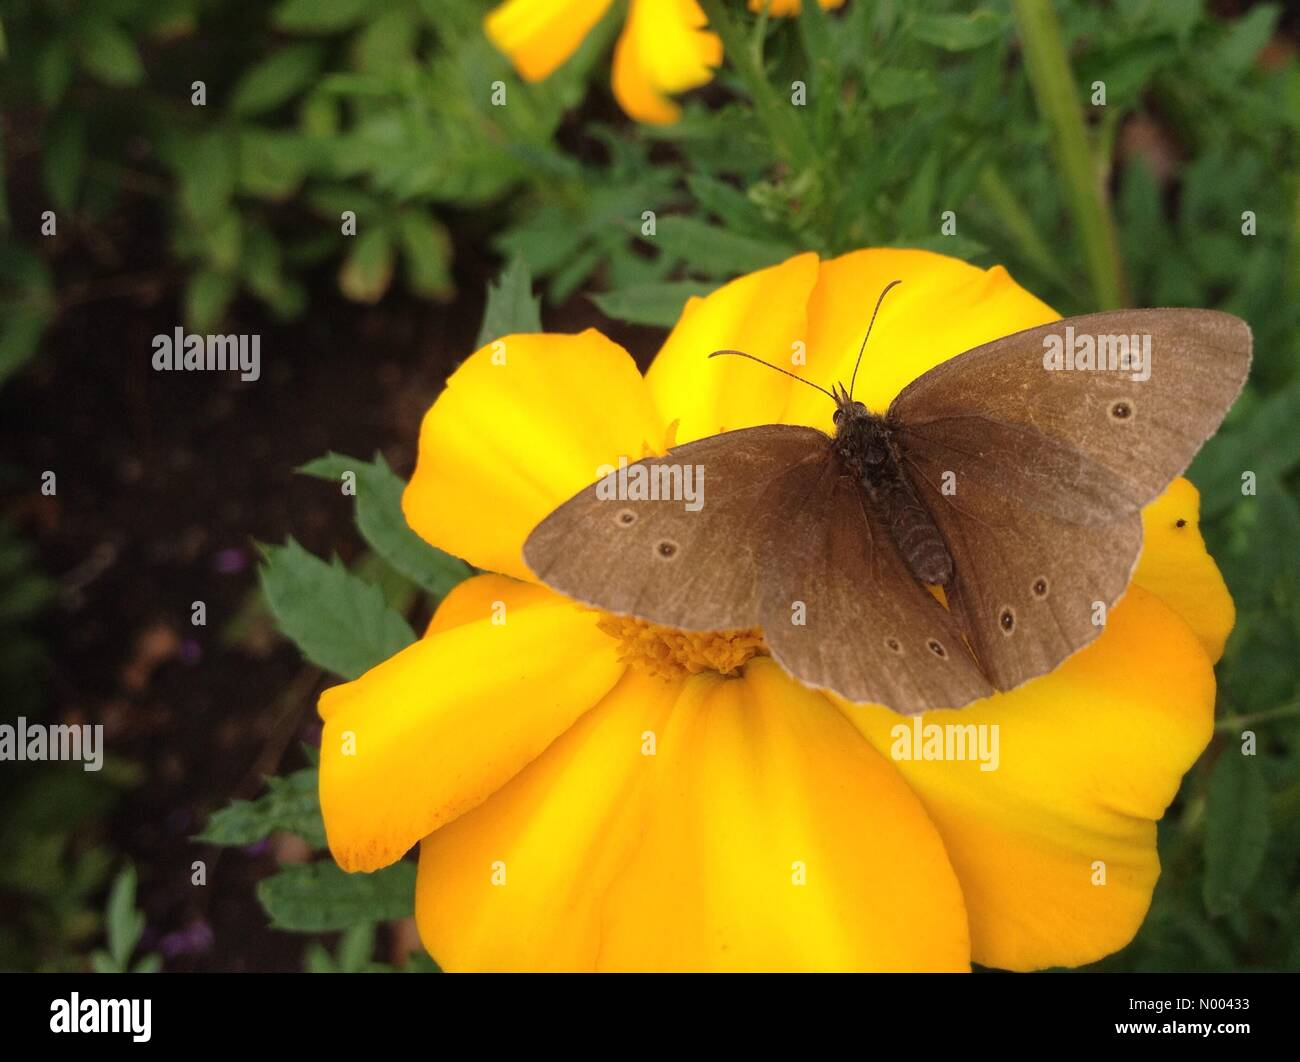 UK weather insects in Leeds, Yorkshire- the sunny spells enticed the insects out to pollinate the flowers at Golden Stock Photo